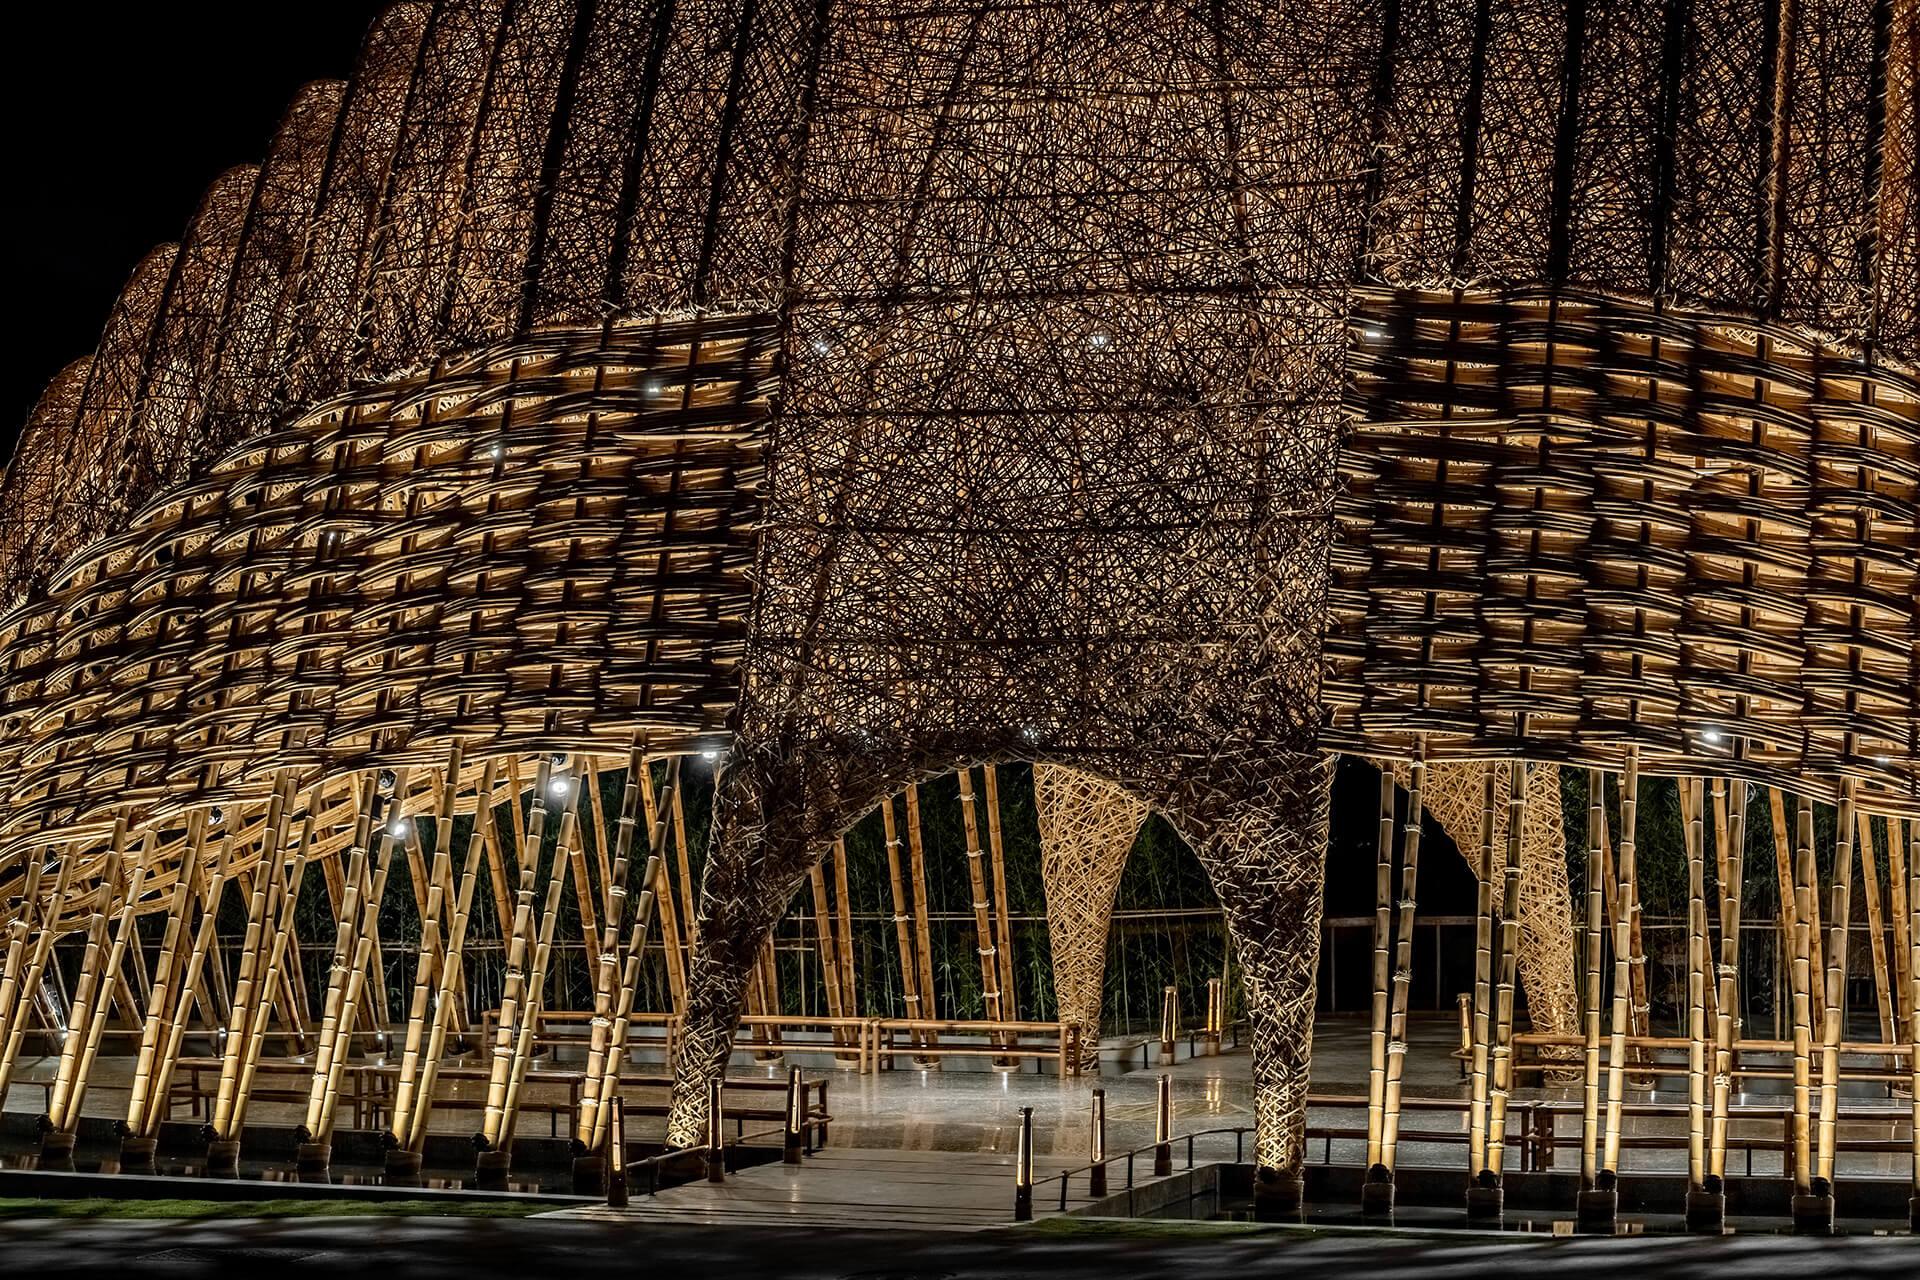 The bamboo sheets are woven in longitudinal and omni-directional methods across the pavilion | Zuo Studio creates the Bamboo Pavilion for Taichung World Flora Exposition | STIRworld